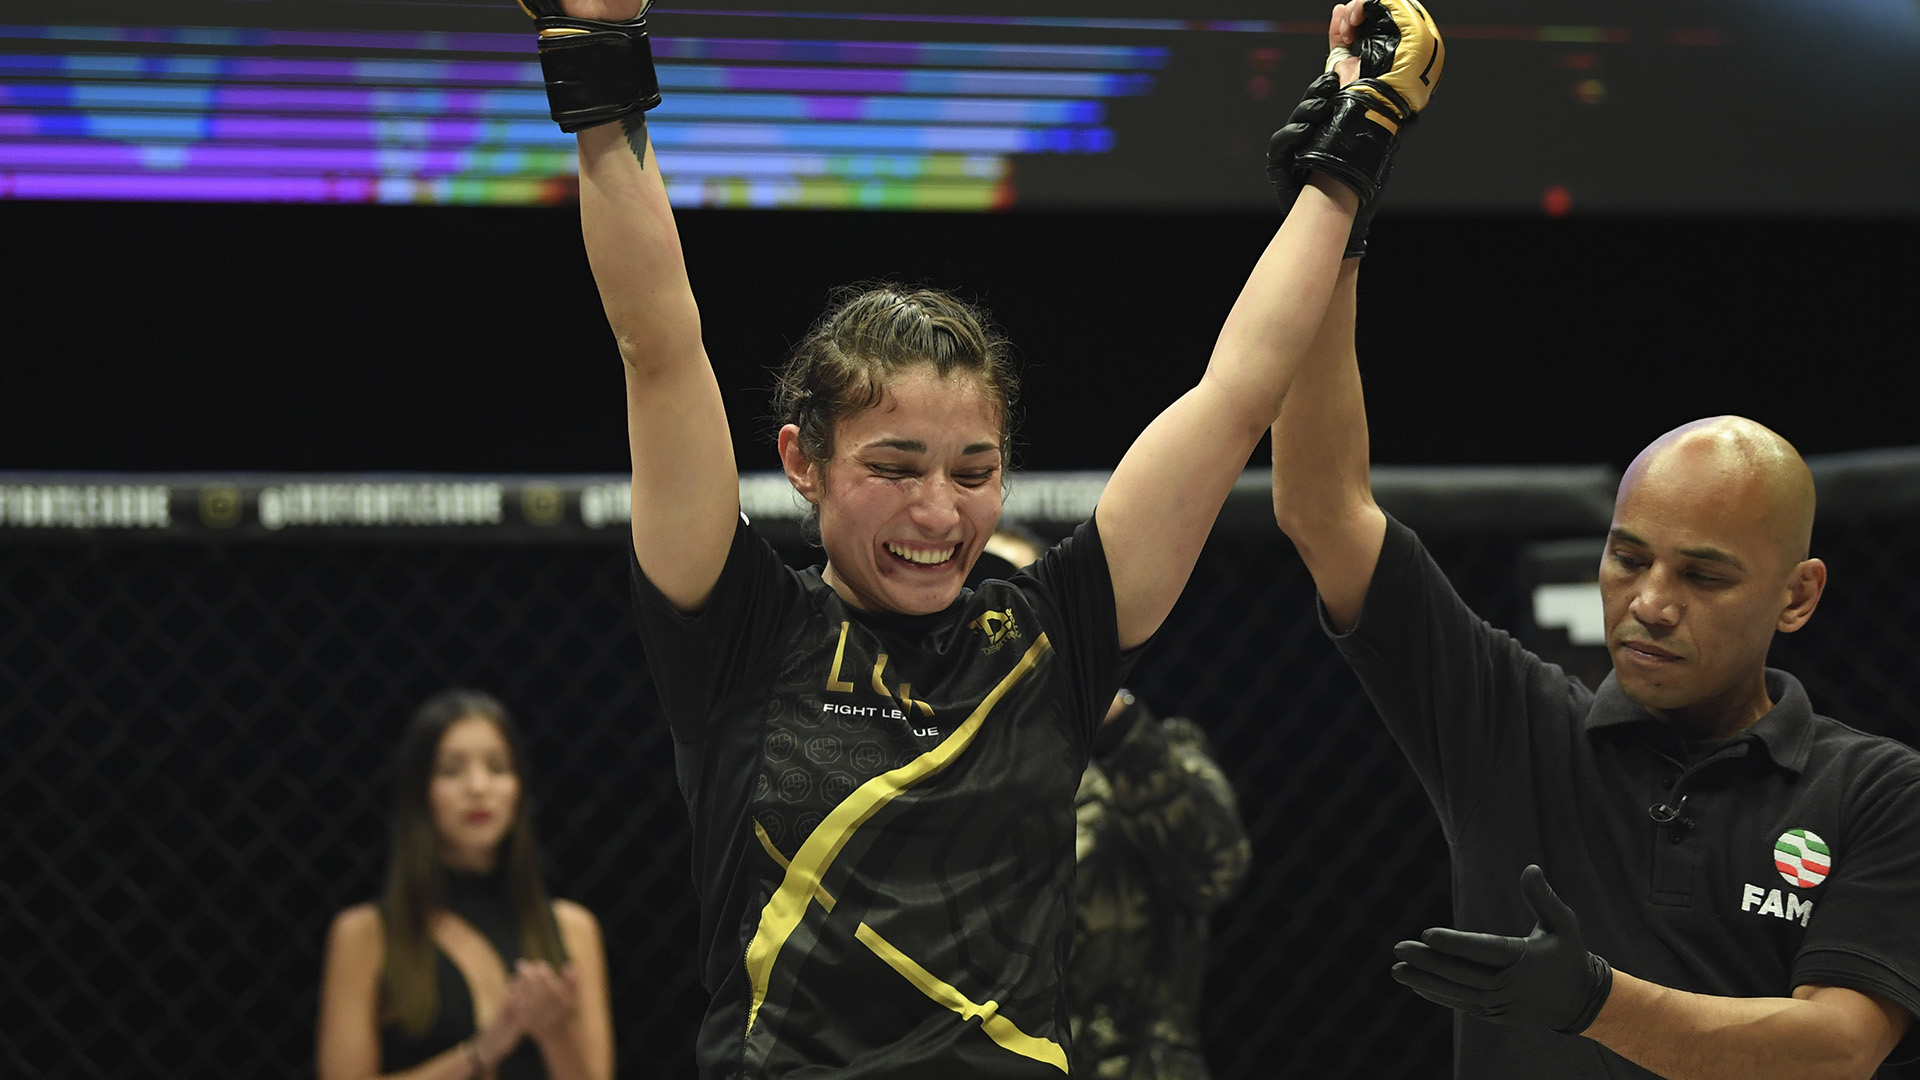 Tania Torres celebrates her LUX Fight League victory (photo curtesy of LUX Fight League)